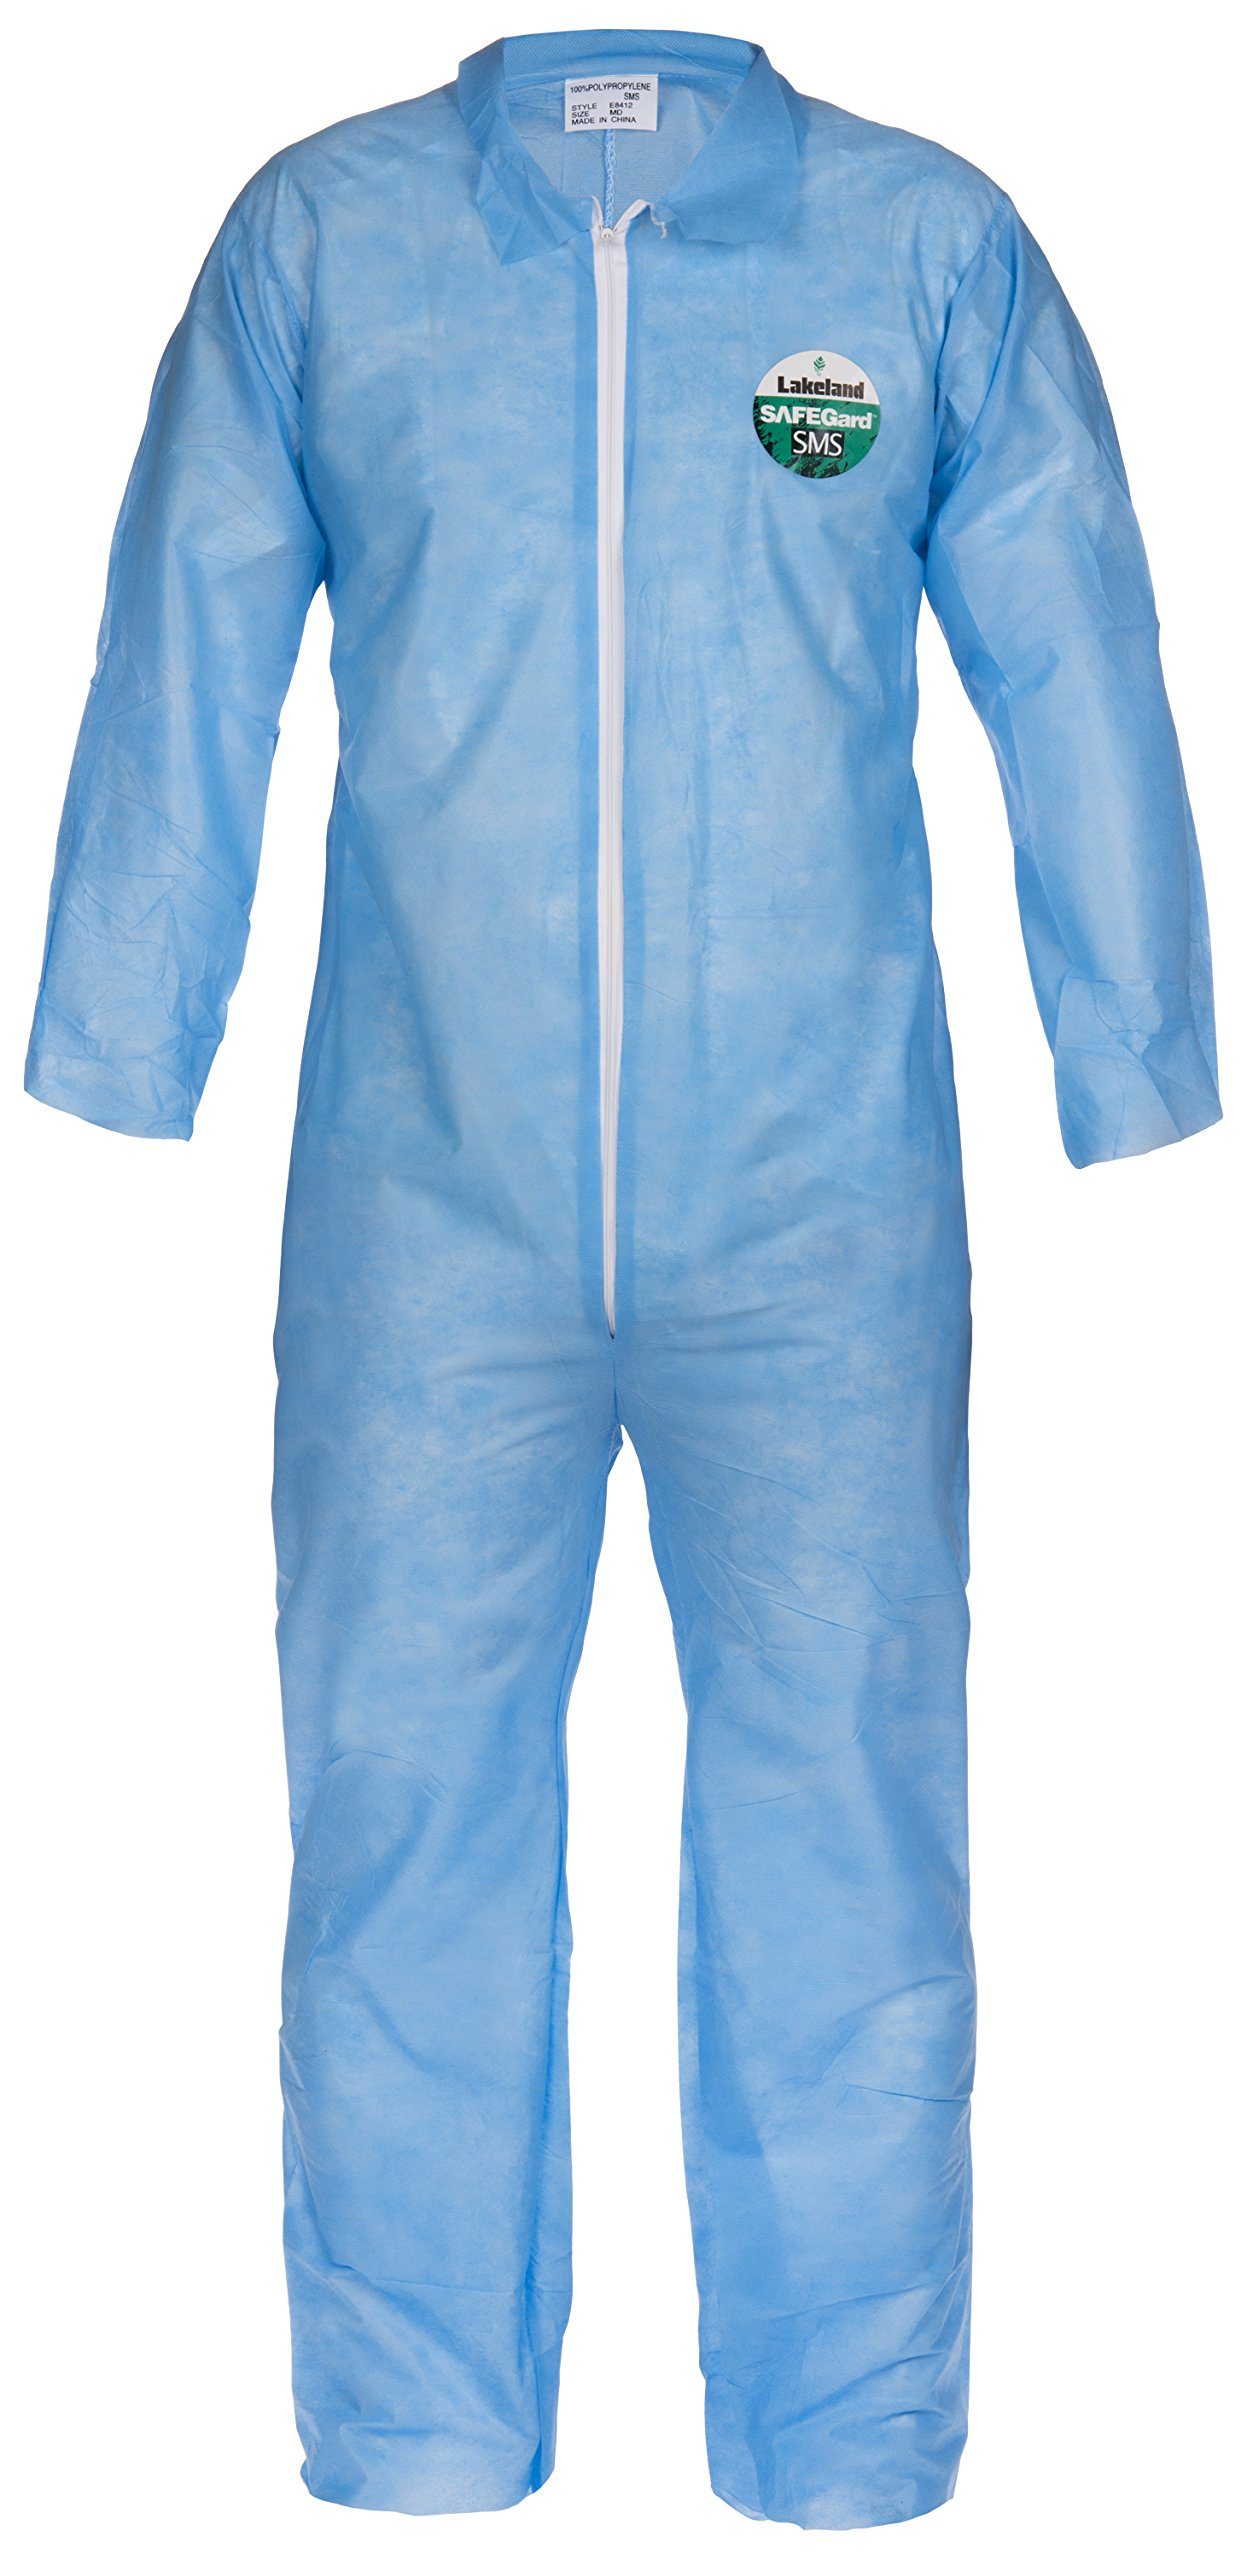 Lakeland SafeGard Economy SMS Coverall, Disposable, Open Cuff, Large, Blue (Case of 25)